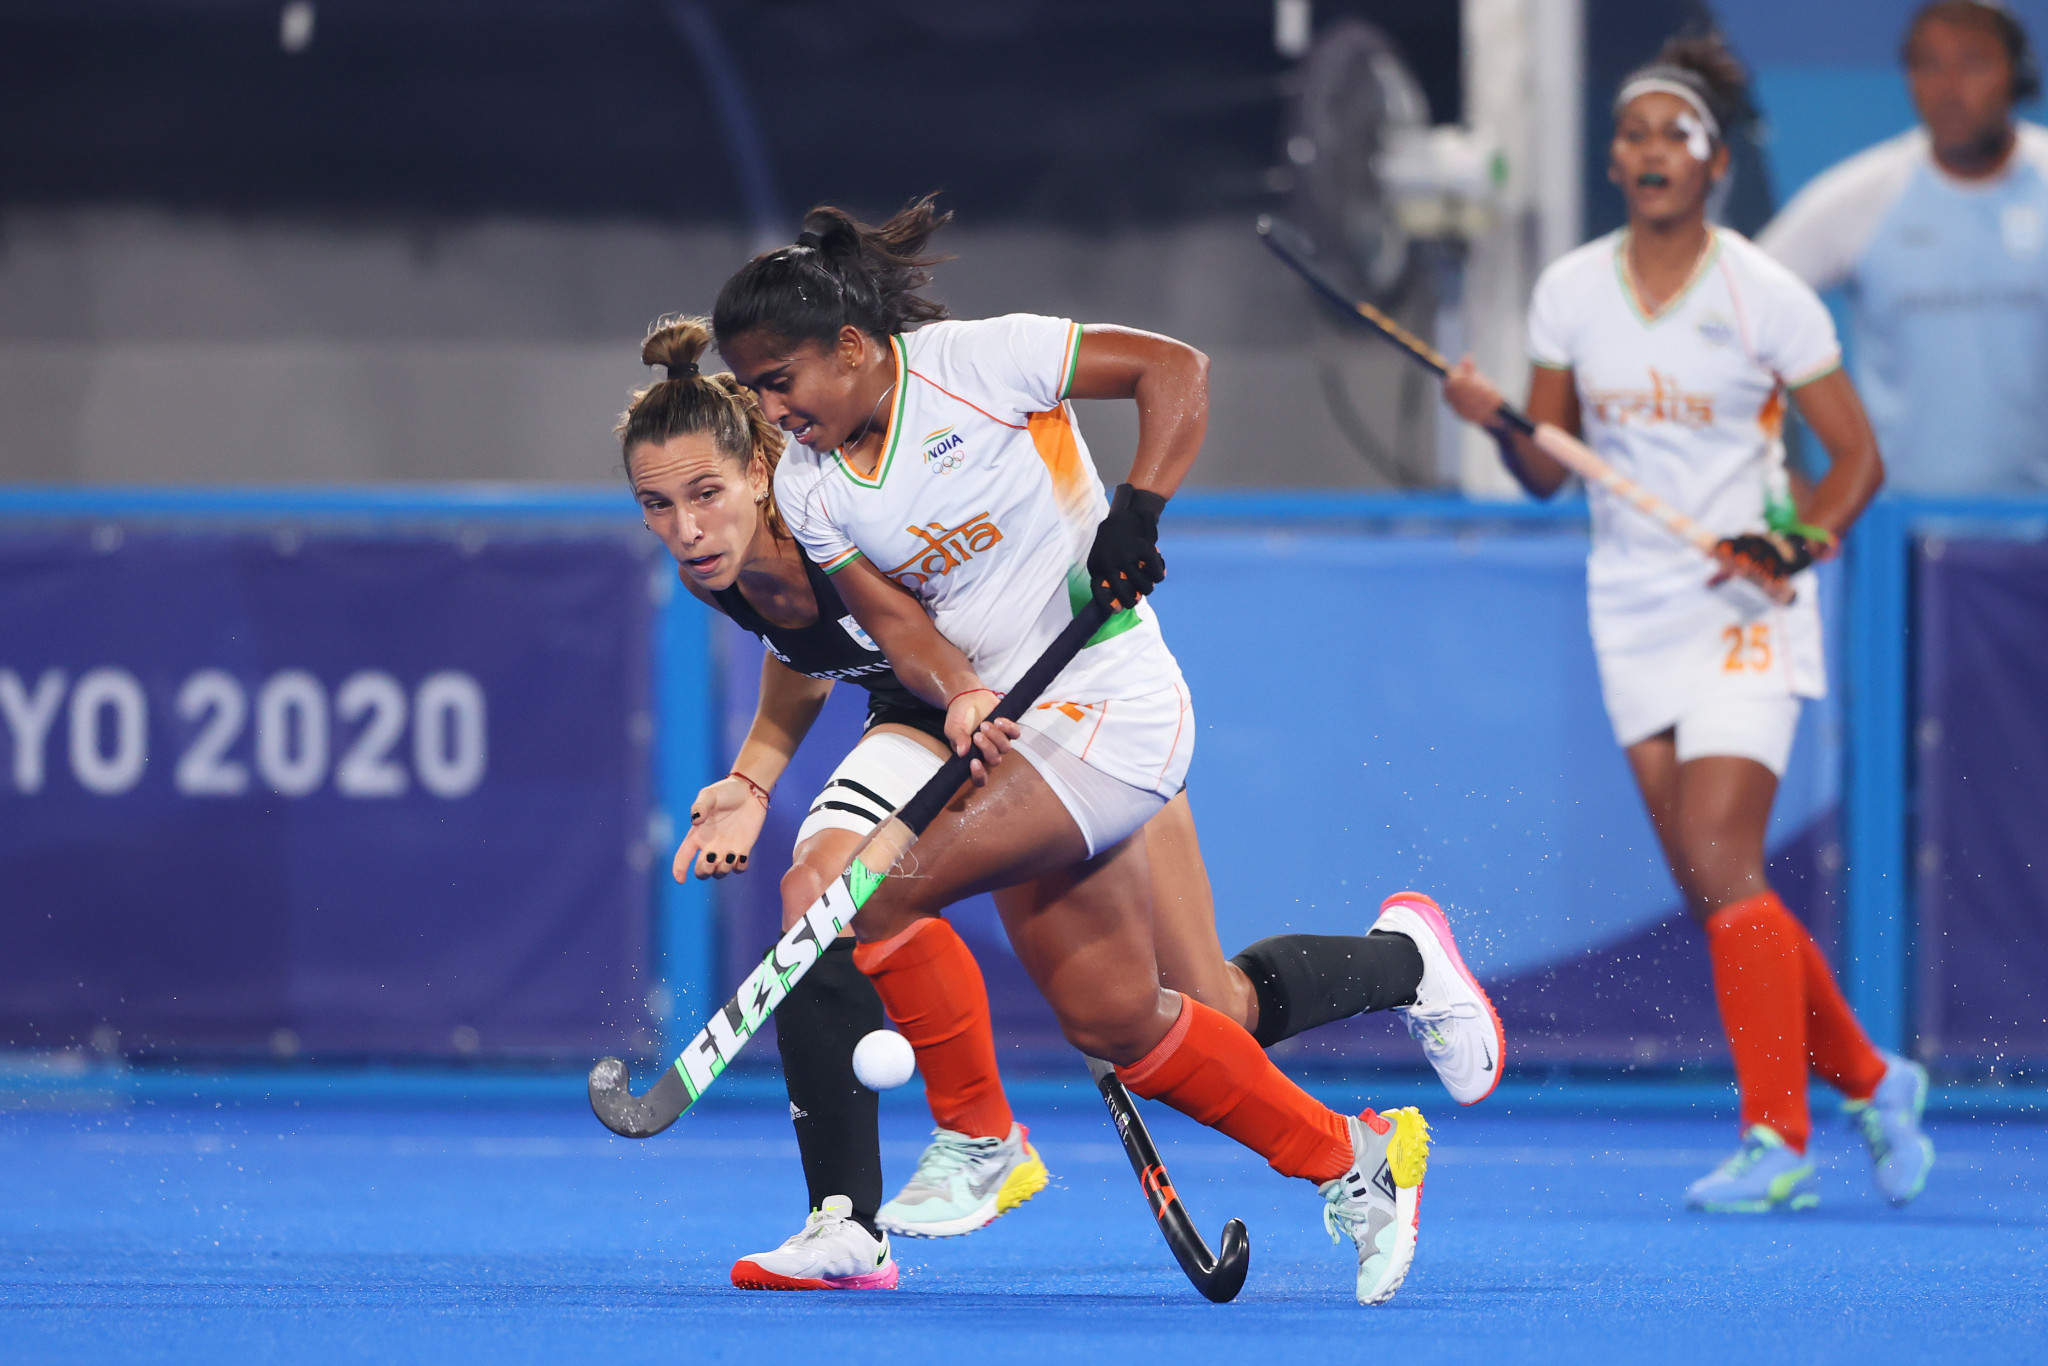 CGF President hoping to persuade India to change mind over Birmingham 2022 hockey withdrawal